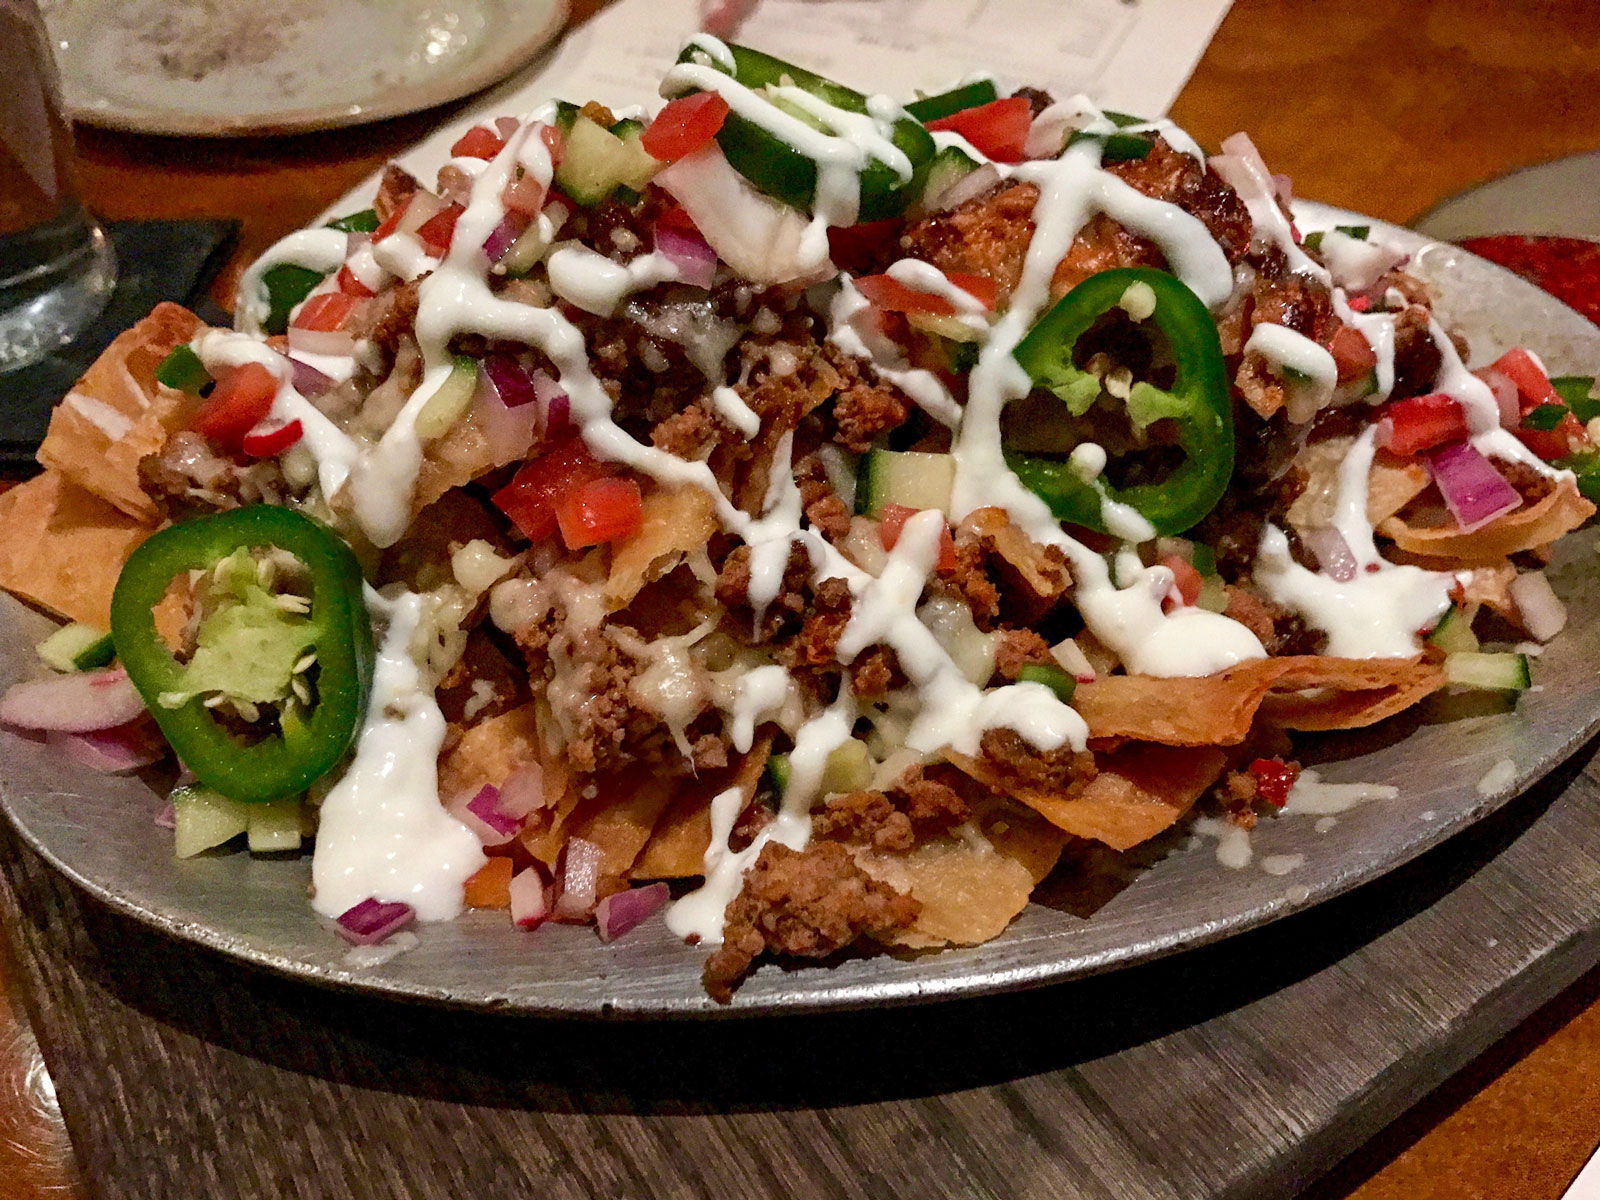 Where to Find Amazing Regional Takes on Nachos Around the Country